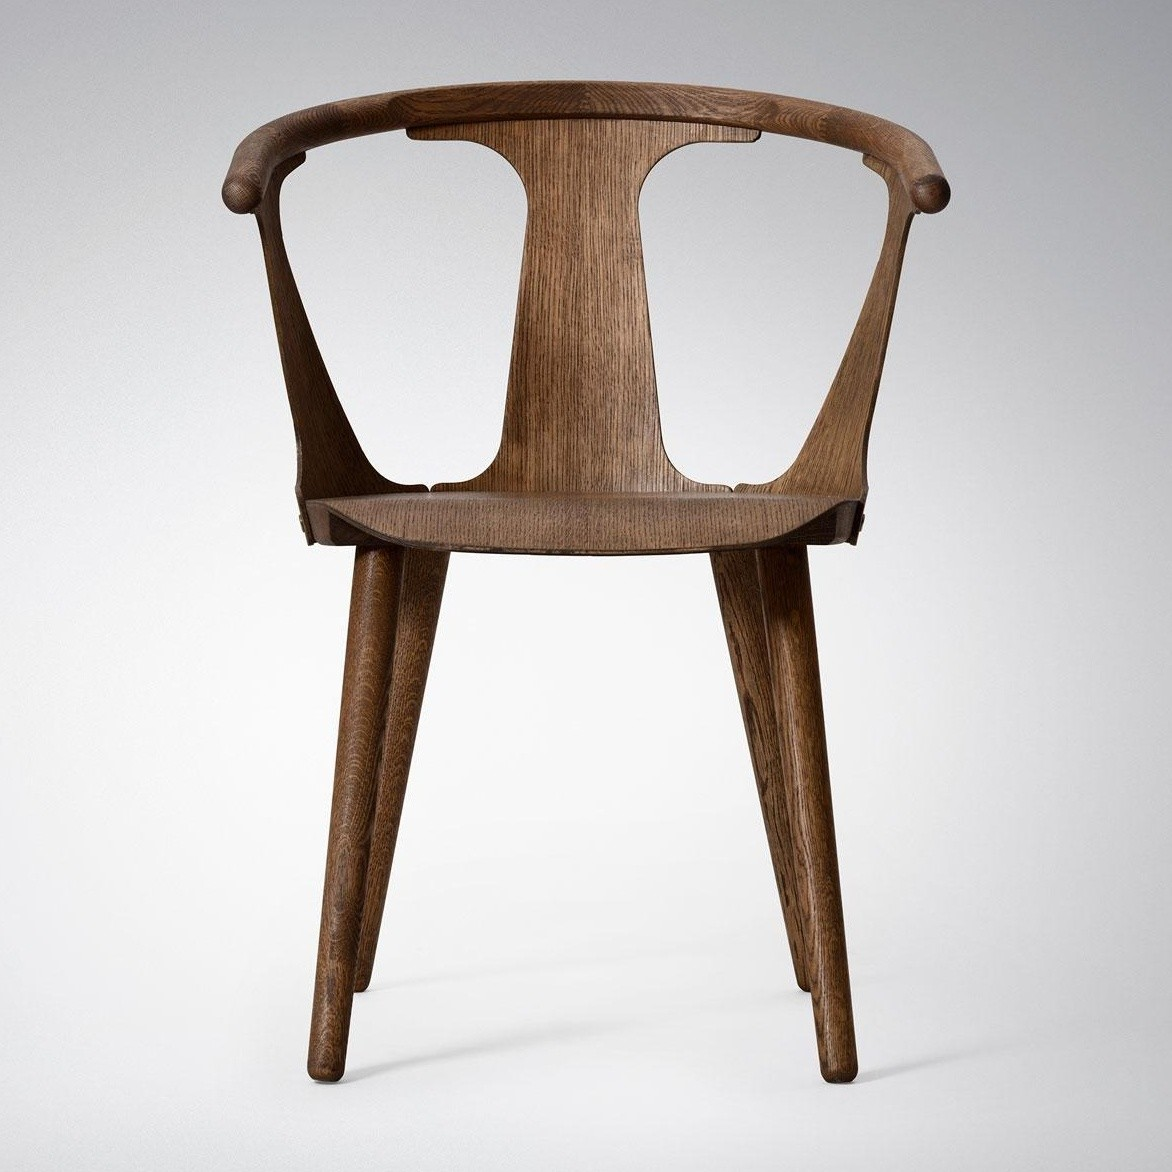 In between chair sk1 stuhl andtradition for Stuhl design entwicklung